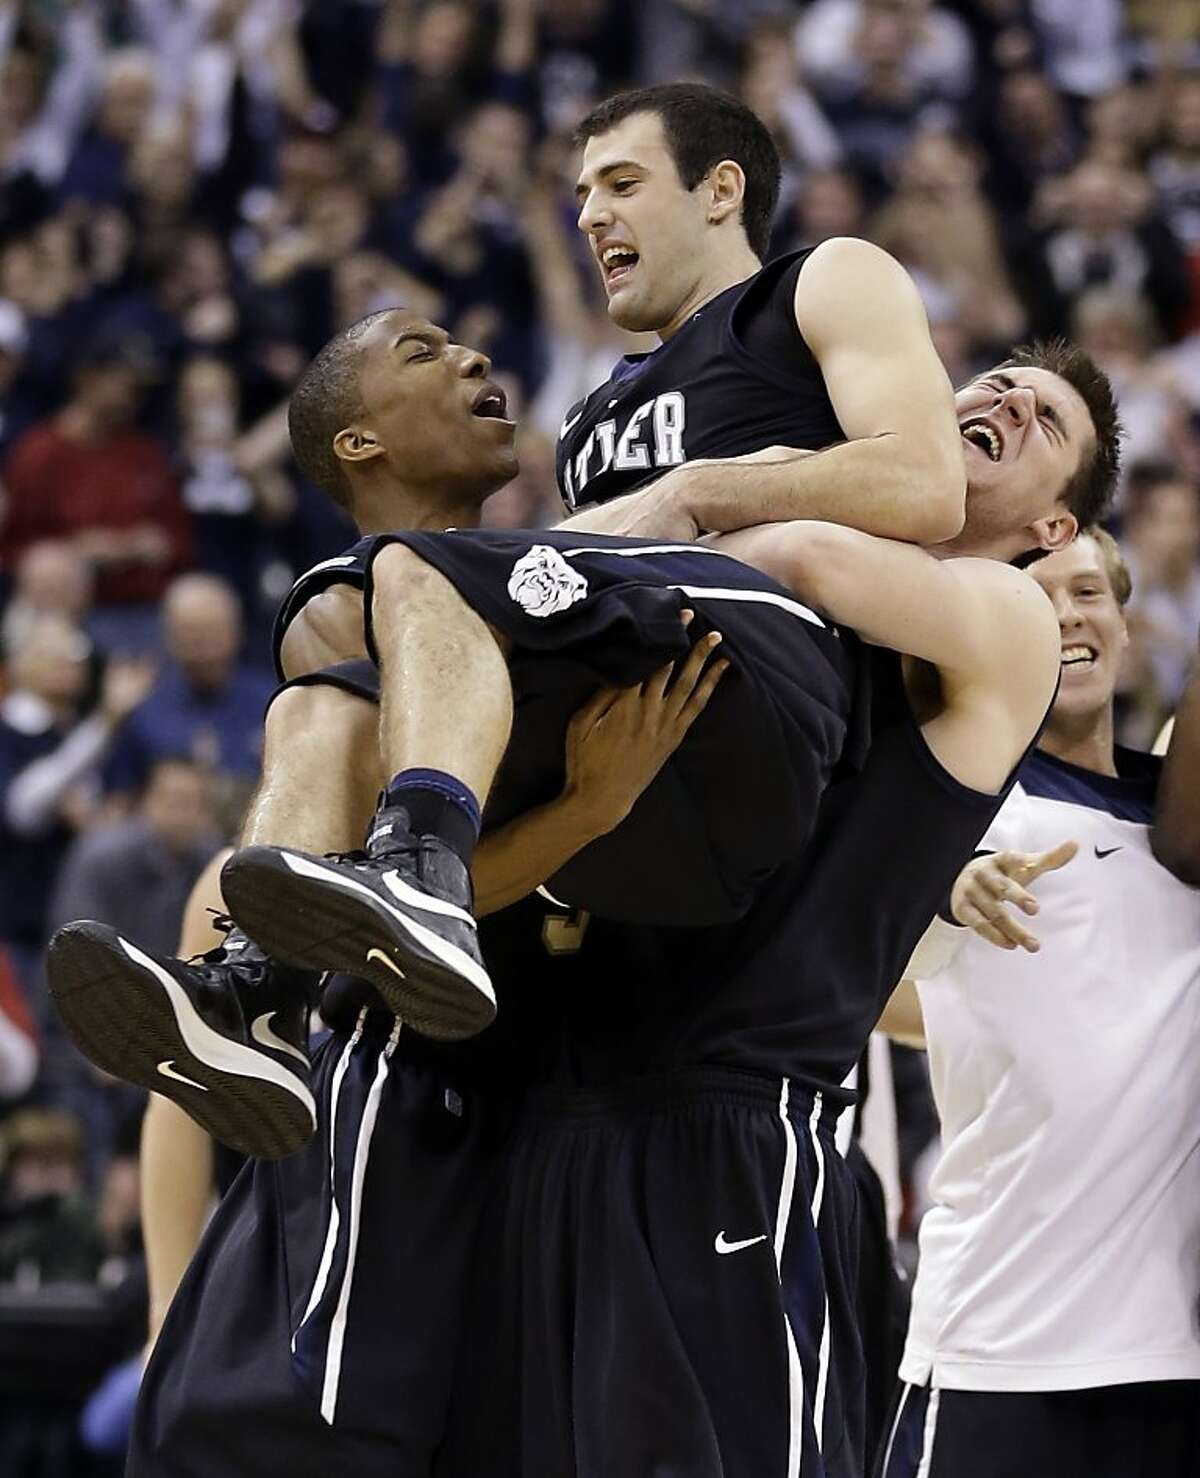 Guard Alex Barlow (center) is carried by teammates after Butler beat No. 1 Indiana 88-86 in overtime in Indianapolis.